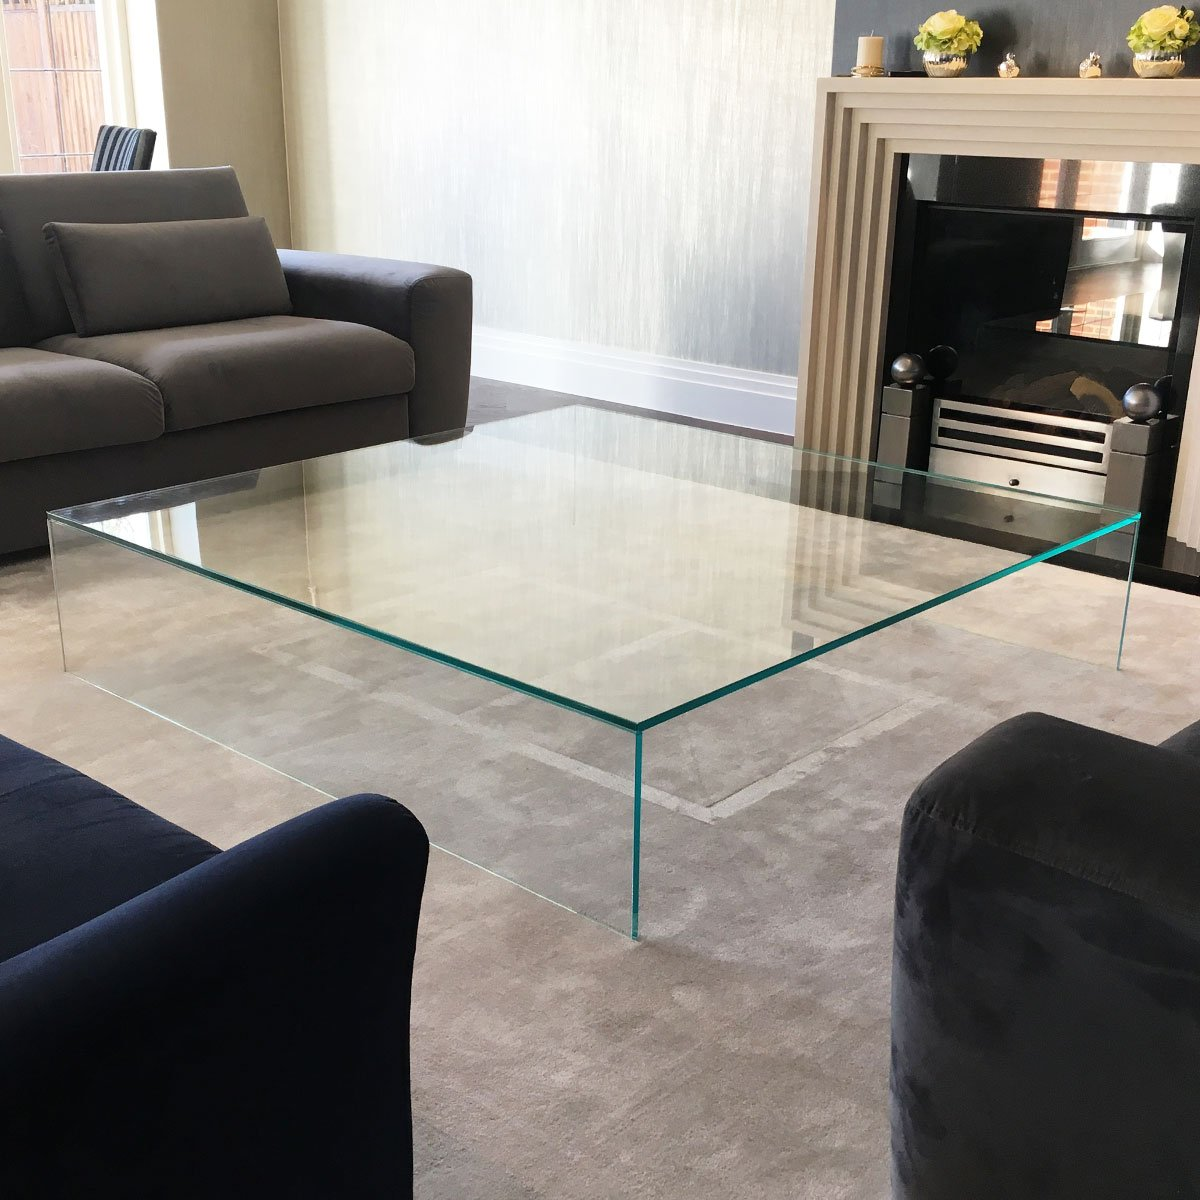 judd large glass coffee table